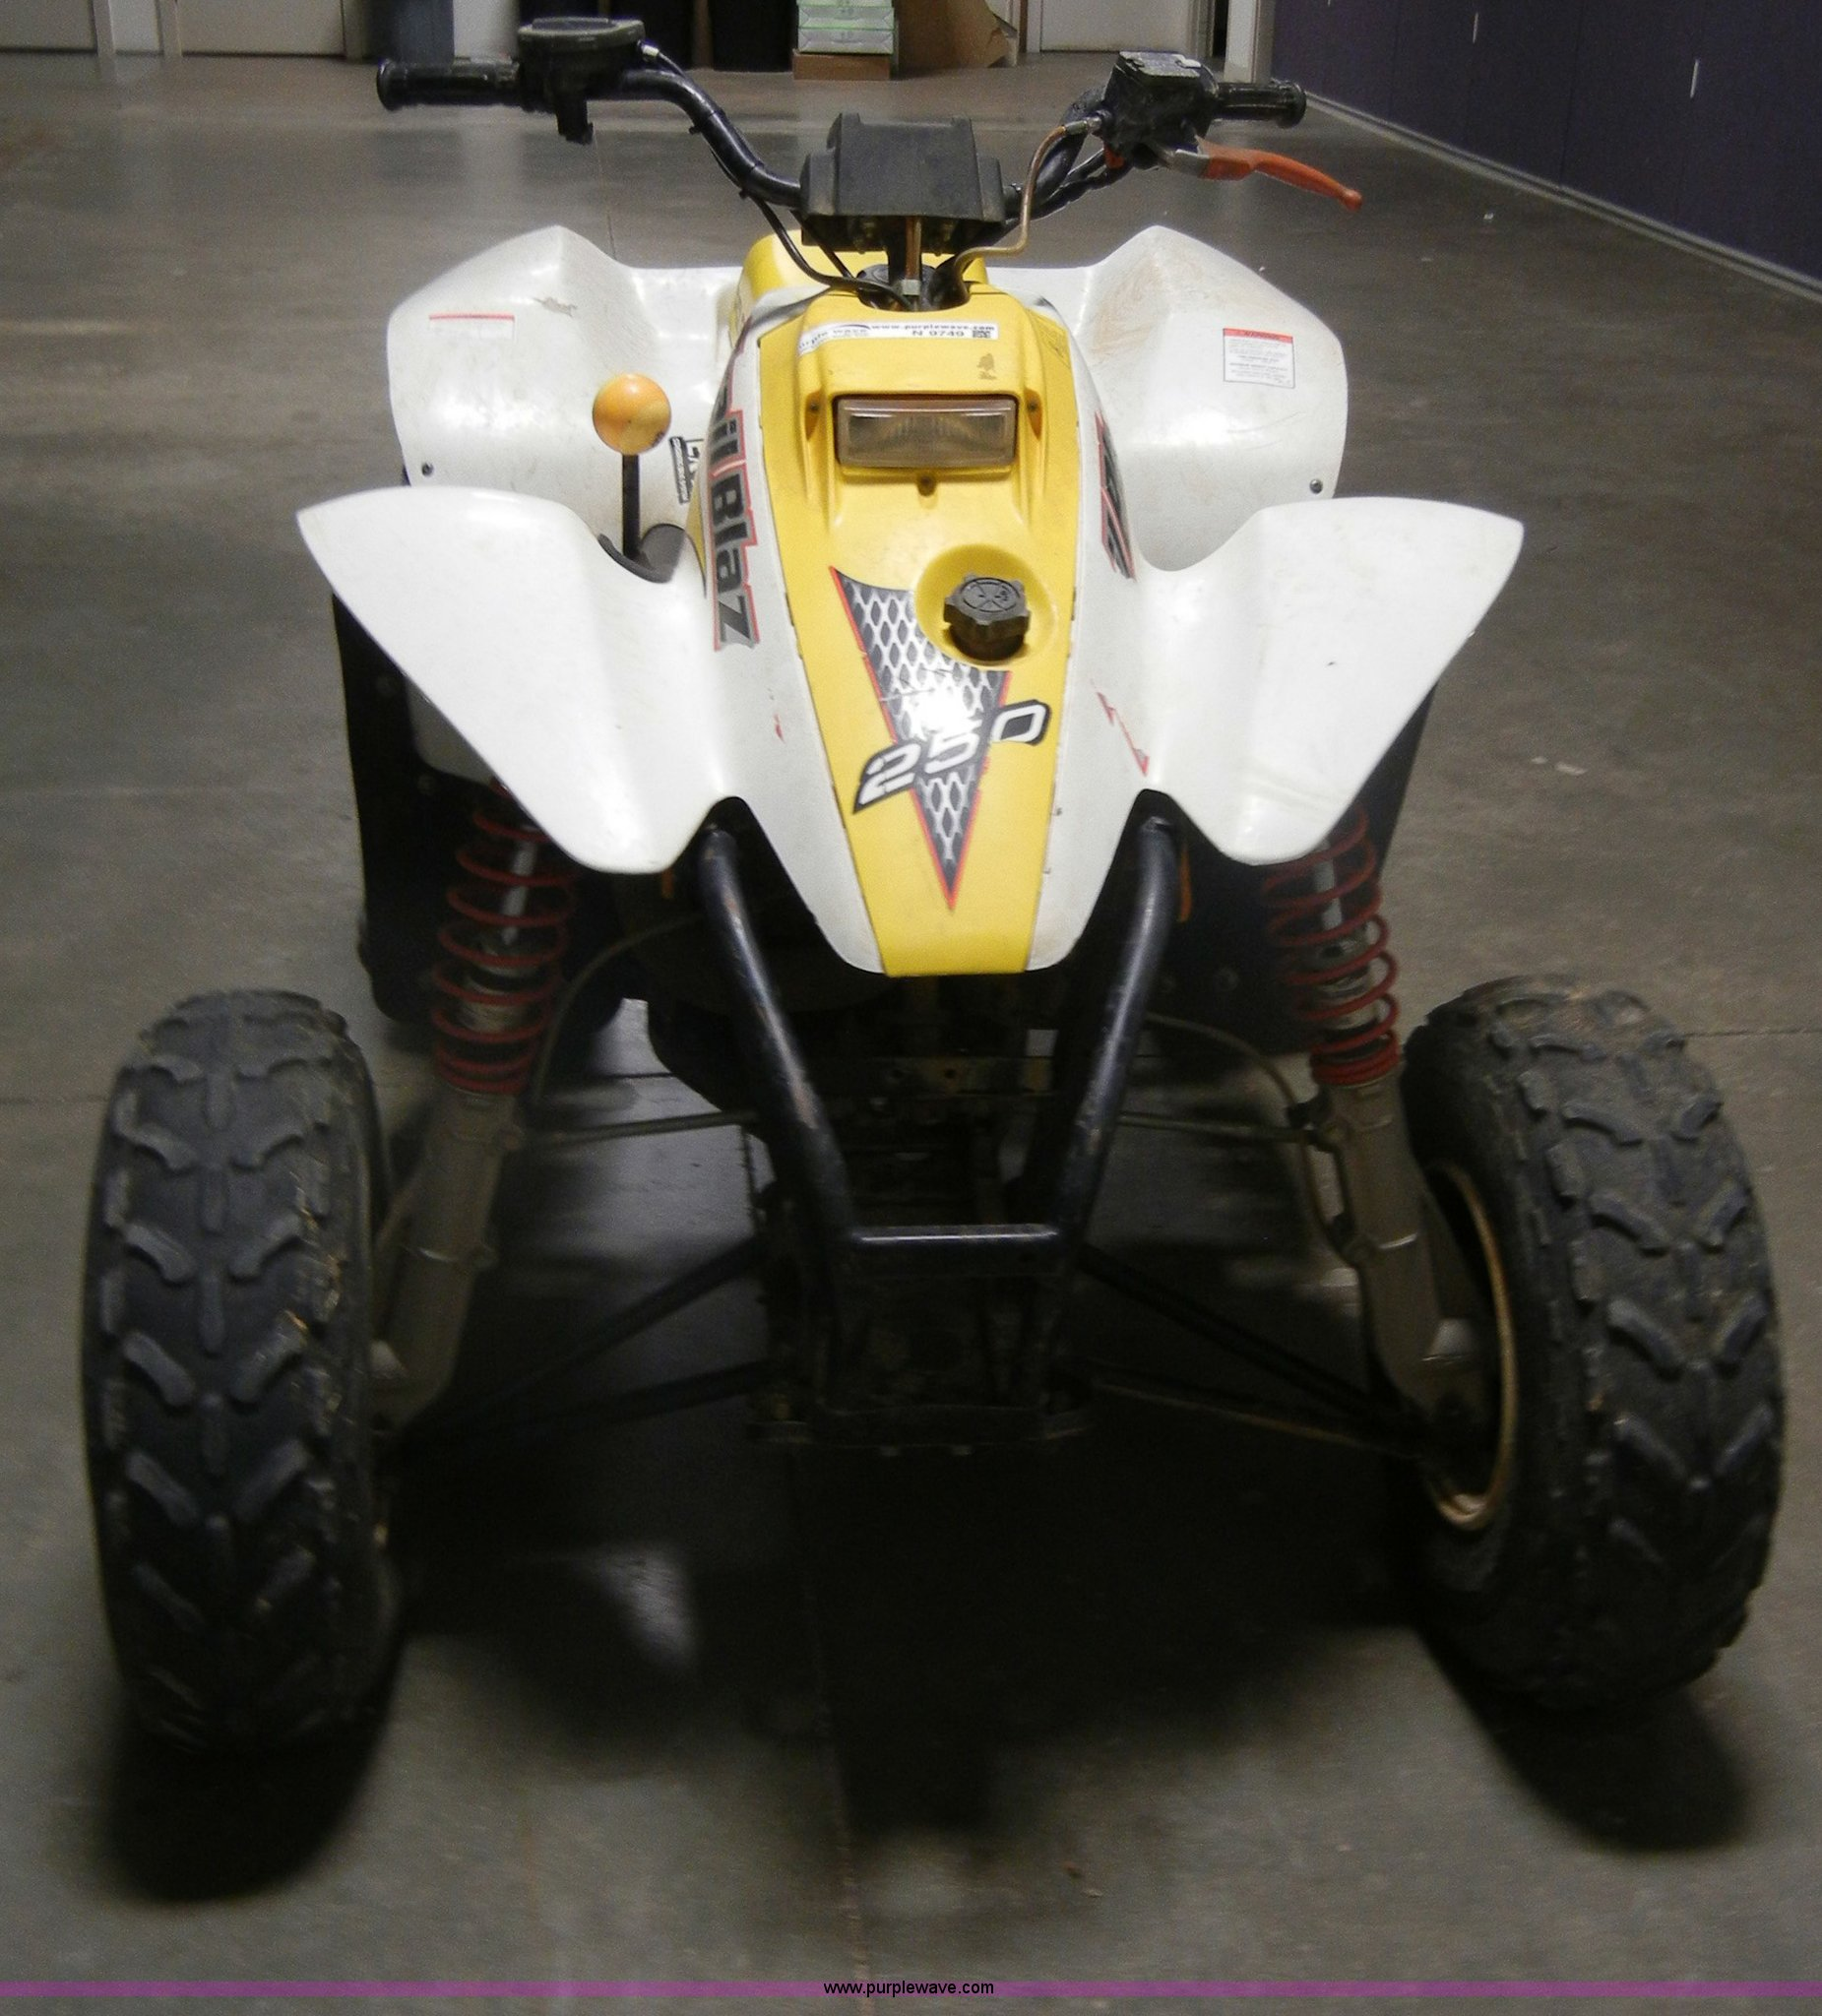 2001 Polaris Trailblazer 250 ATV | Item N9749 | SOLD! May 2